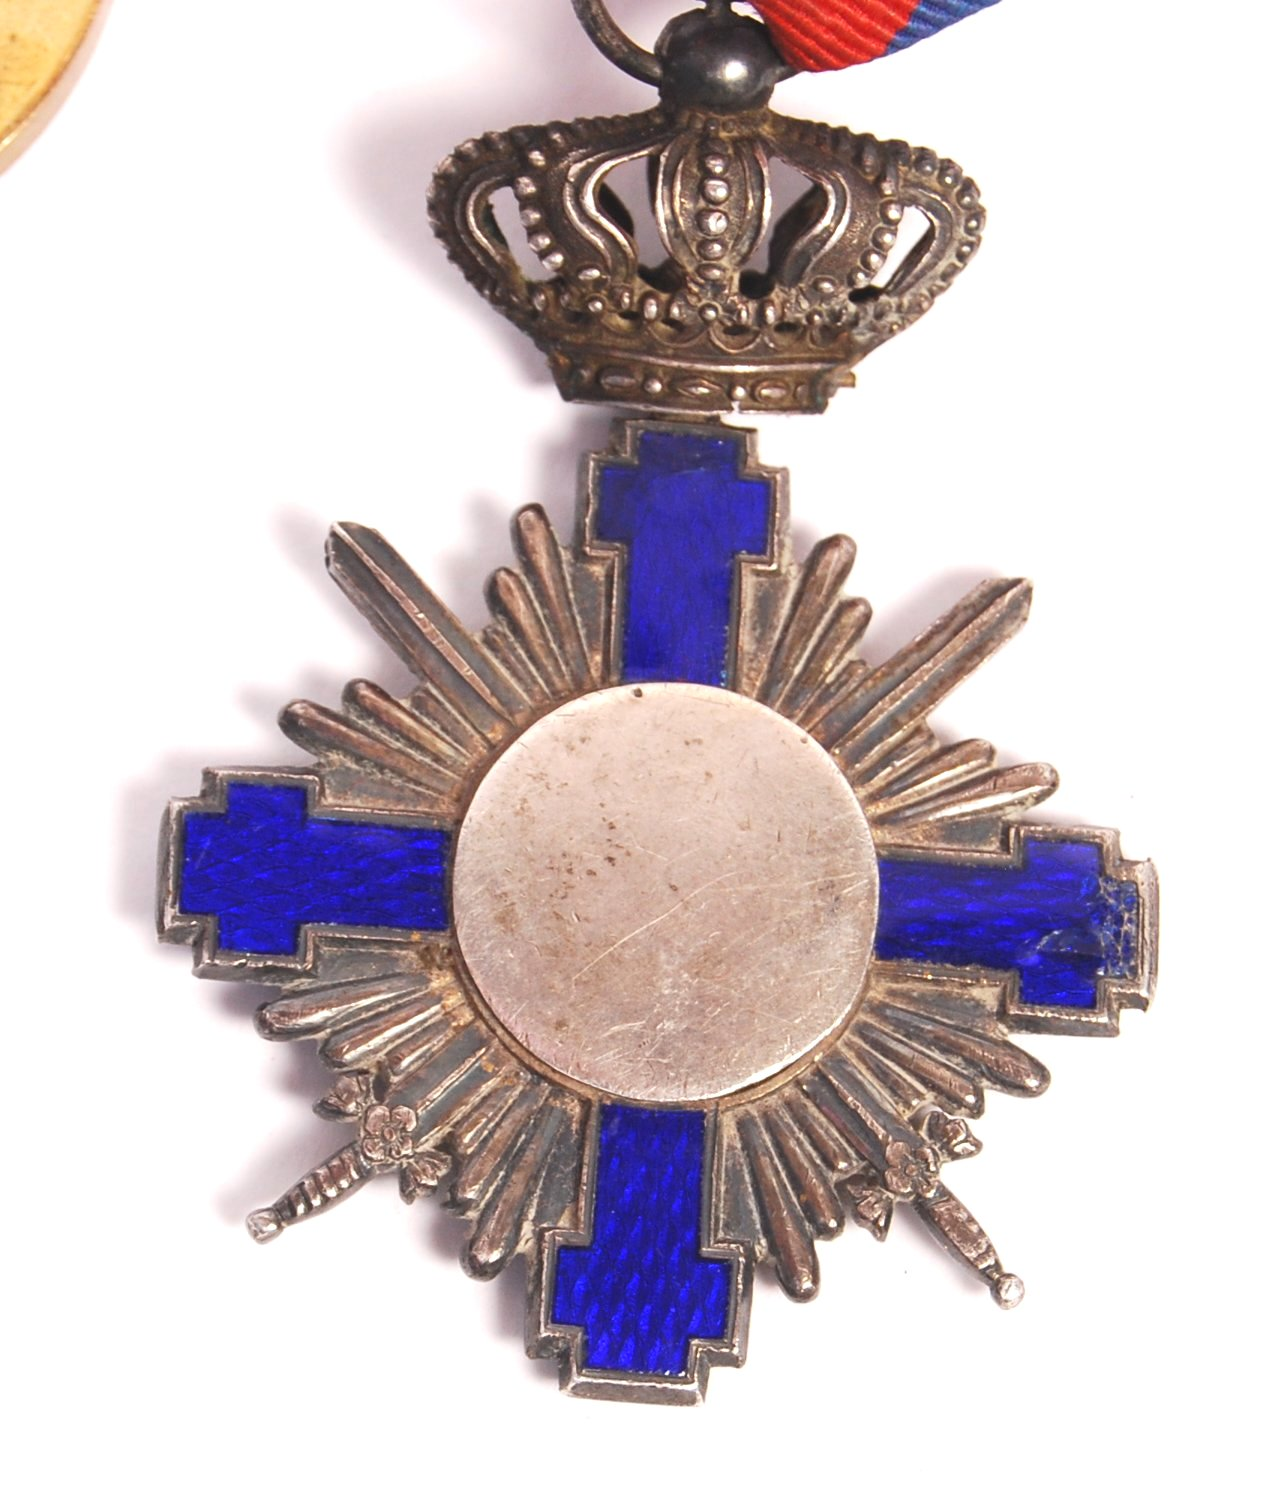 WWI FIRST WORLD WAR MEDAL GROUP - ORDER OF THE STAR OF ROMANIA - Image 7 of 8